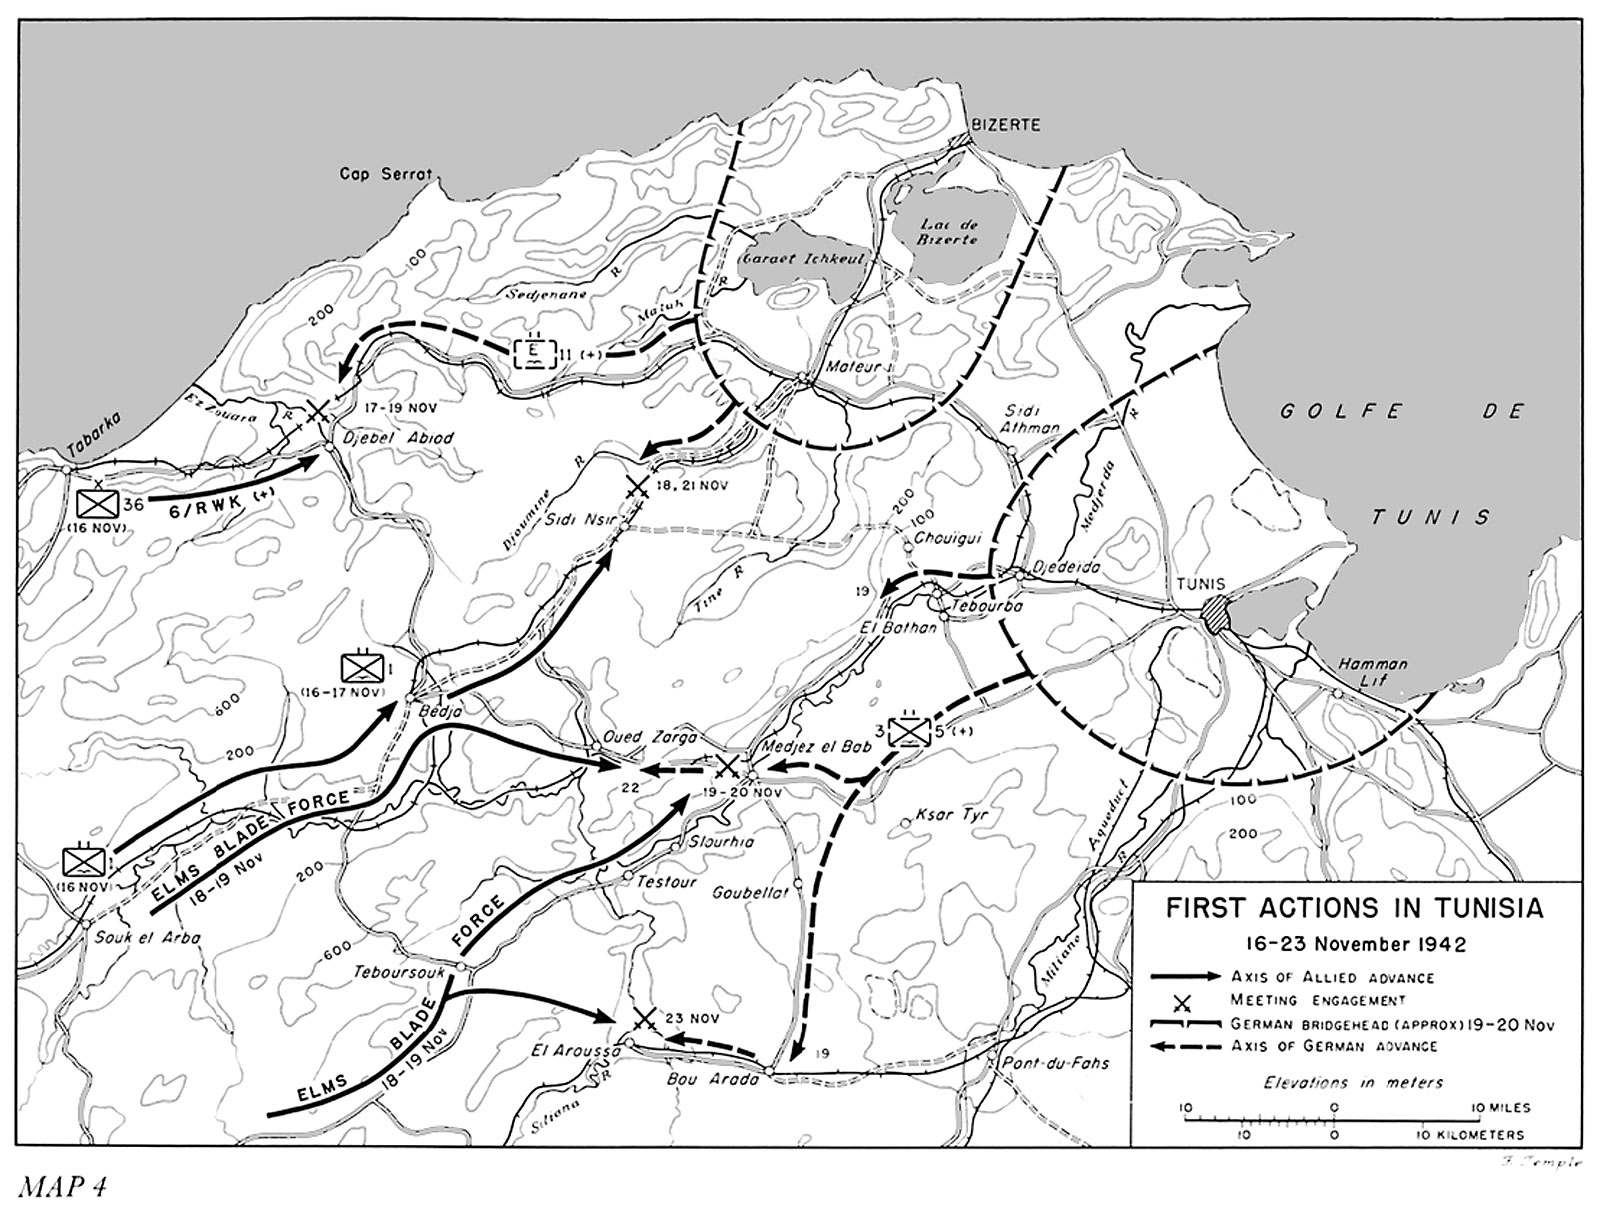 Map of first Allied actions in Tunisia, 16-23 November 1942 (US Army Center of Military History)